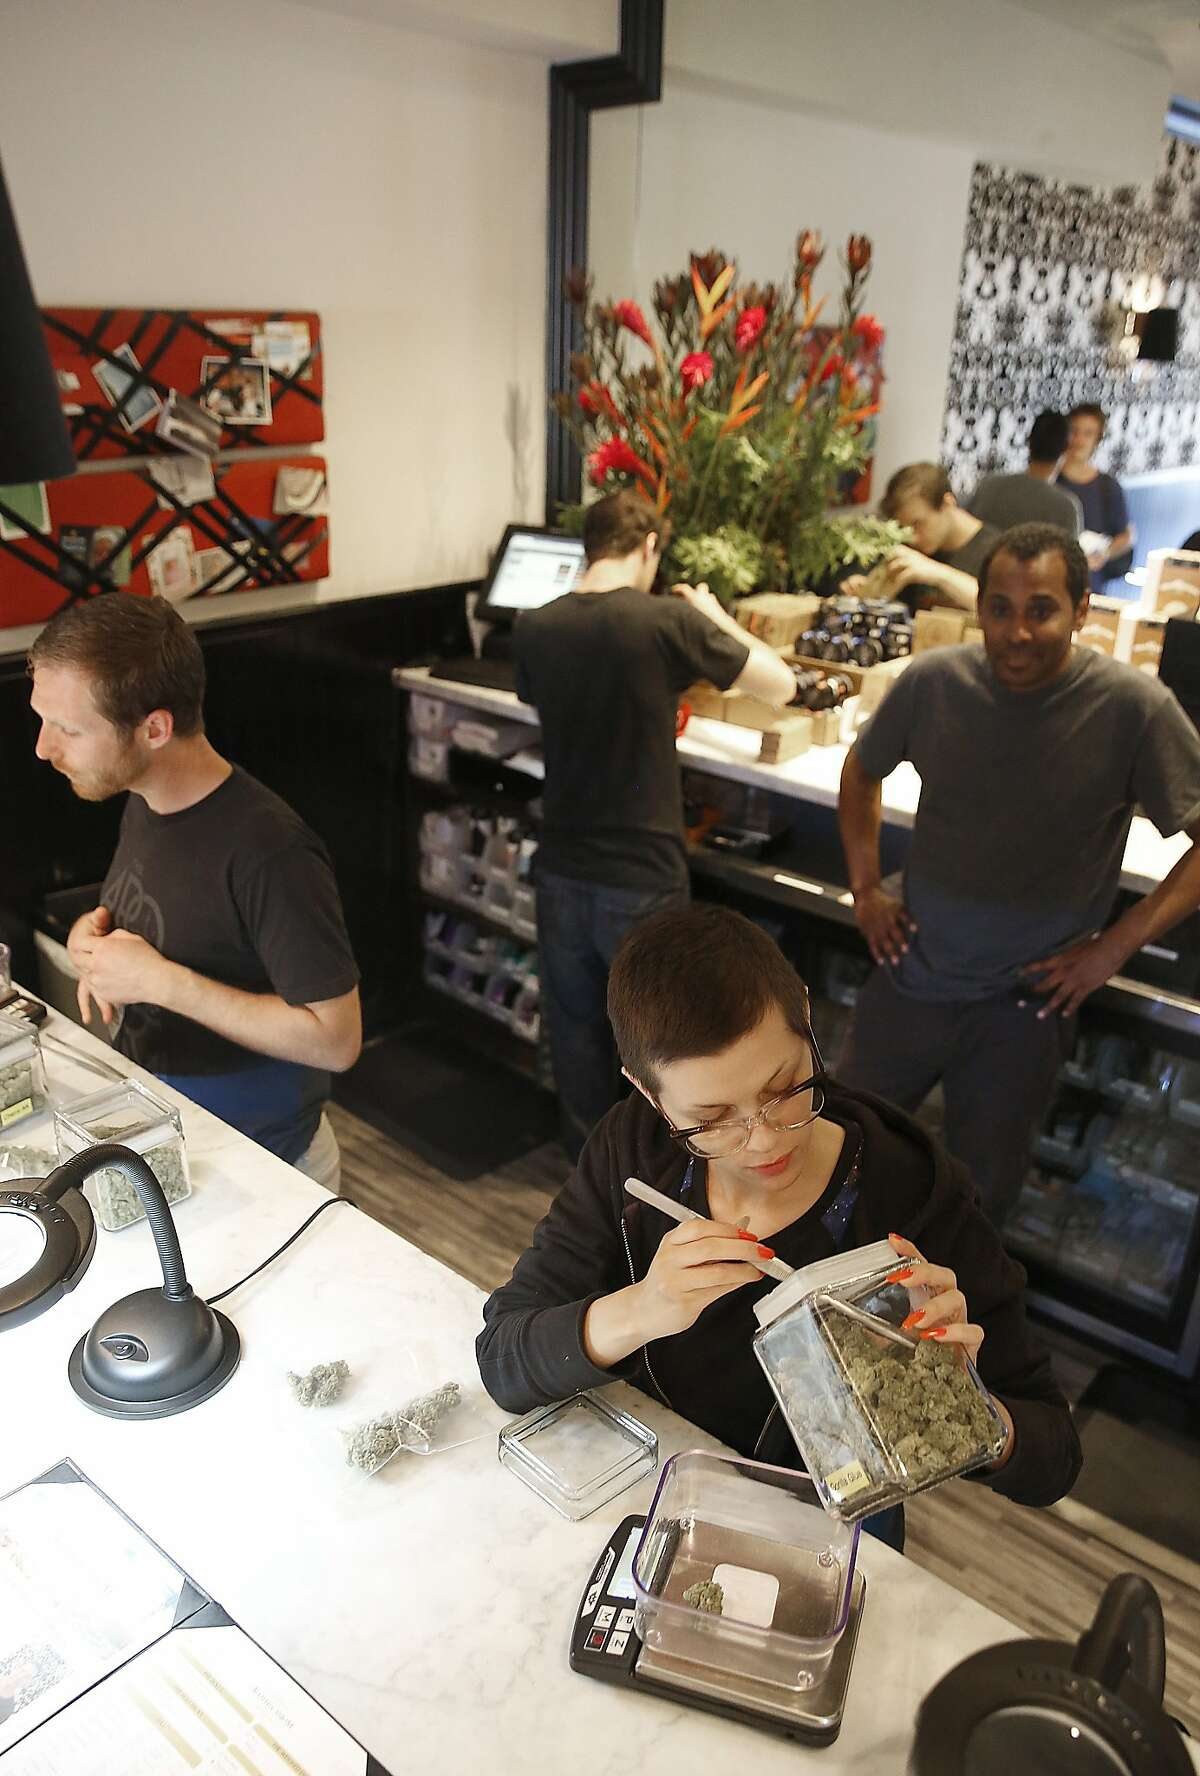 Patient consultants Josh Cremer (left) and Camille Wood (front) help customers at The Apothecarium, a medical marijuana dispensary in San Francisco, Calif., on Thursday, October 1, 2015. Governor Jerry Brown is expected to sign bills to regulate the medicinal weed industry today.